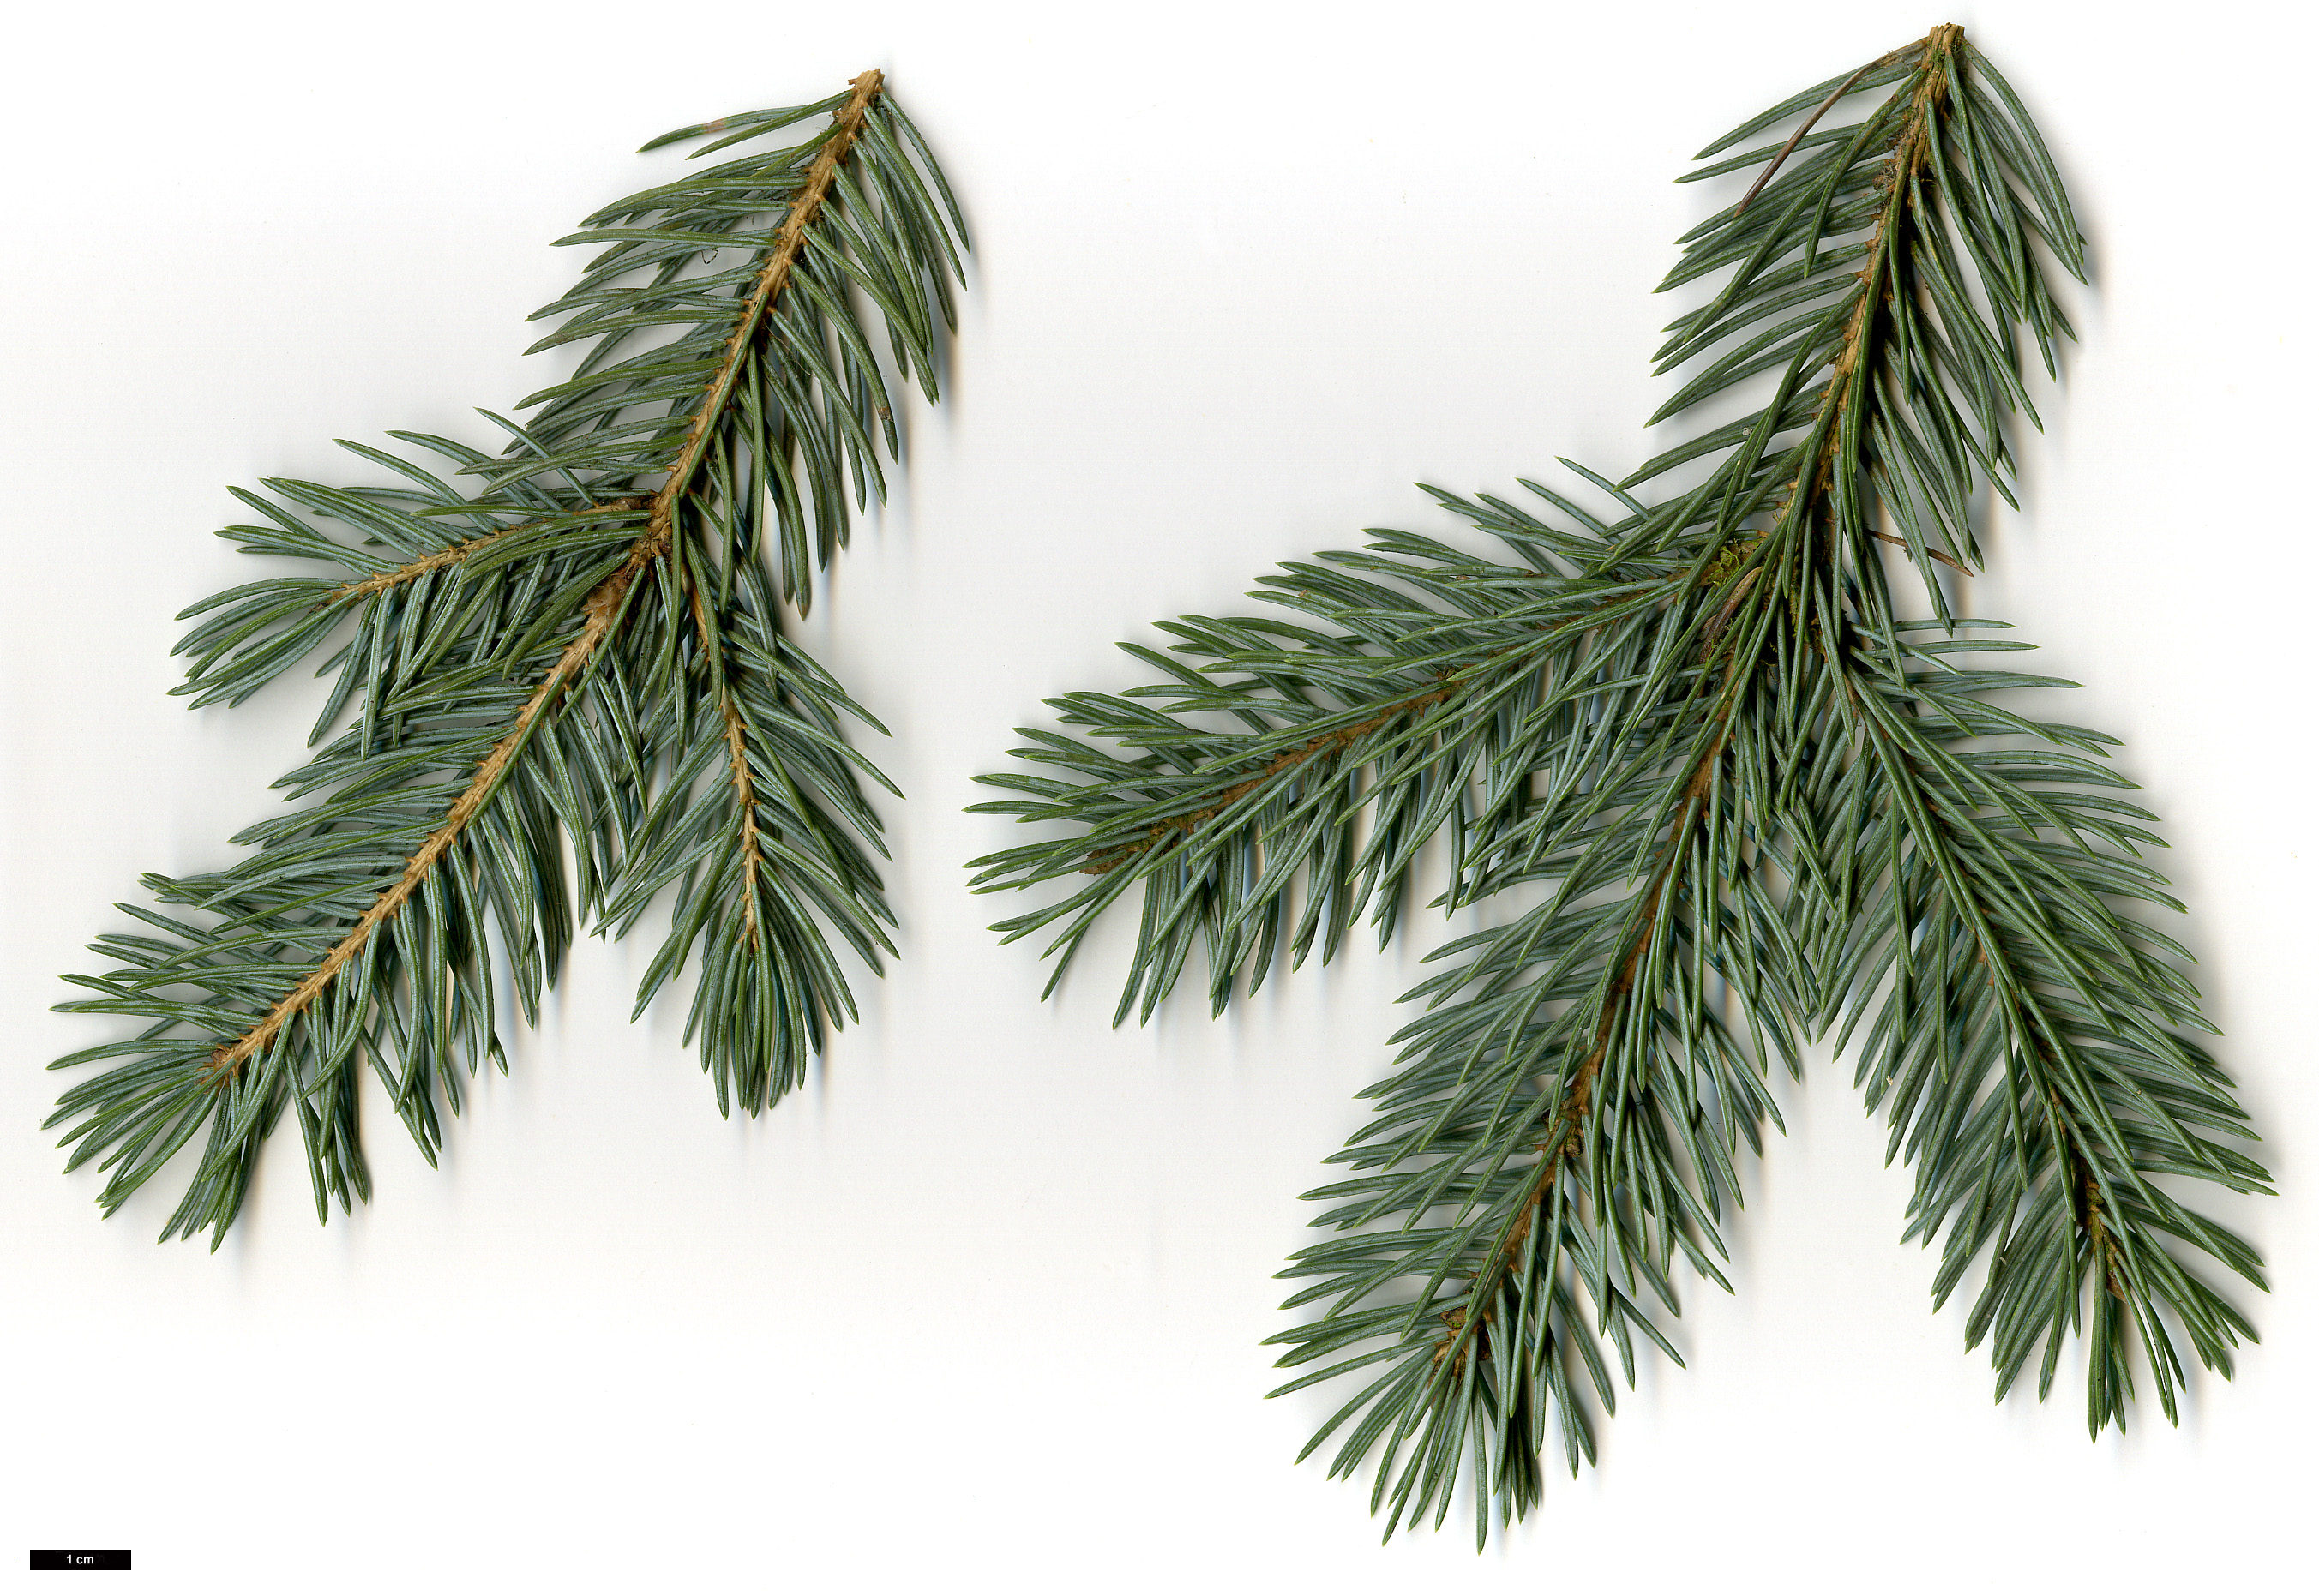 High resolution image: Family: Pinaceae - Genus: Picea - Taxon: pungens - SpeciesSub: Glauca Group